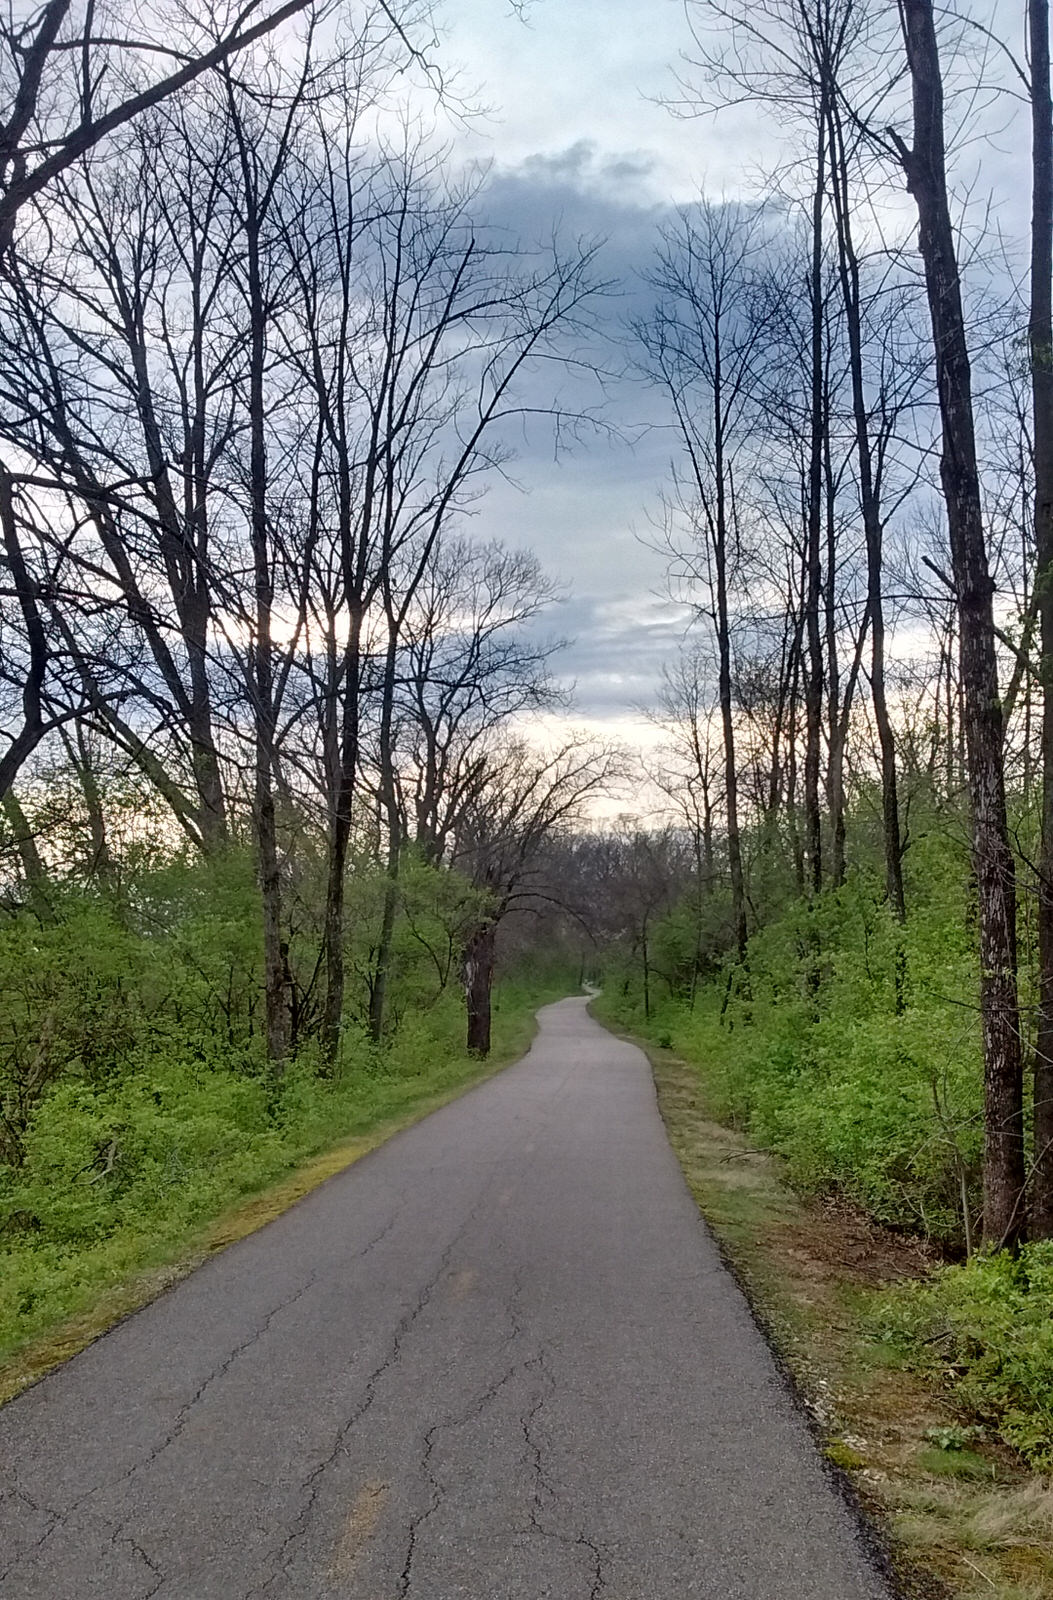 photo: Greenway Trail. Photo by Vejlenser.